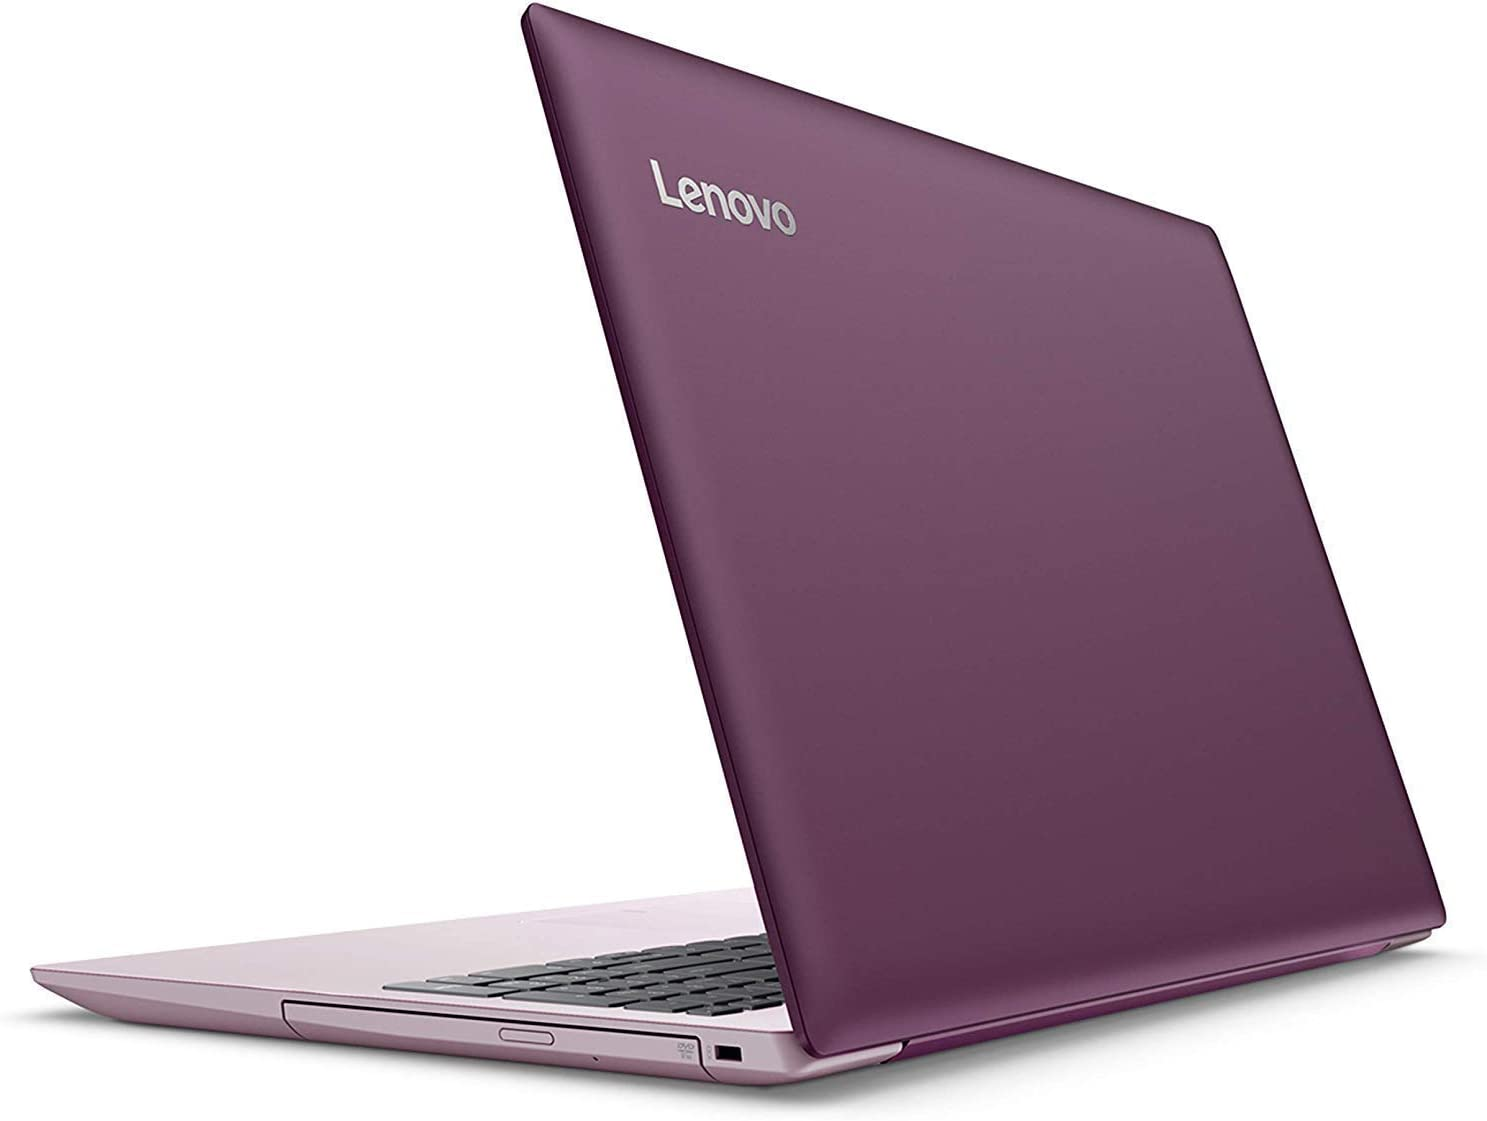 "2020 Lenovo Ideapad 330 15.6"" Anti Glared HD Premium Business Laptop (AMD A9-9425, 8GB DDR4 Memory, 256GB SSD, AMD Radeon R5 Graphic, DVD-RW, HDMI, RJ-45, WiFi, Windows 10 Home) - Purple (Renewed)"